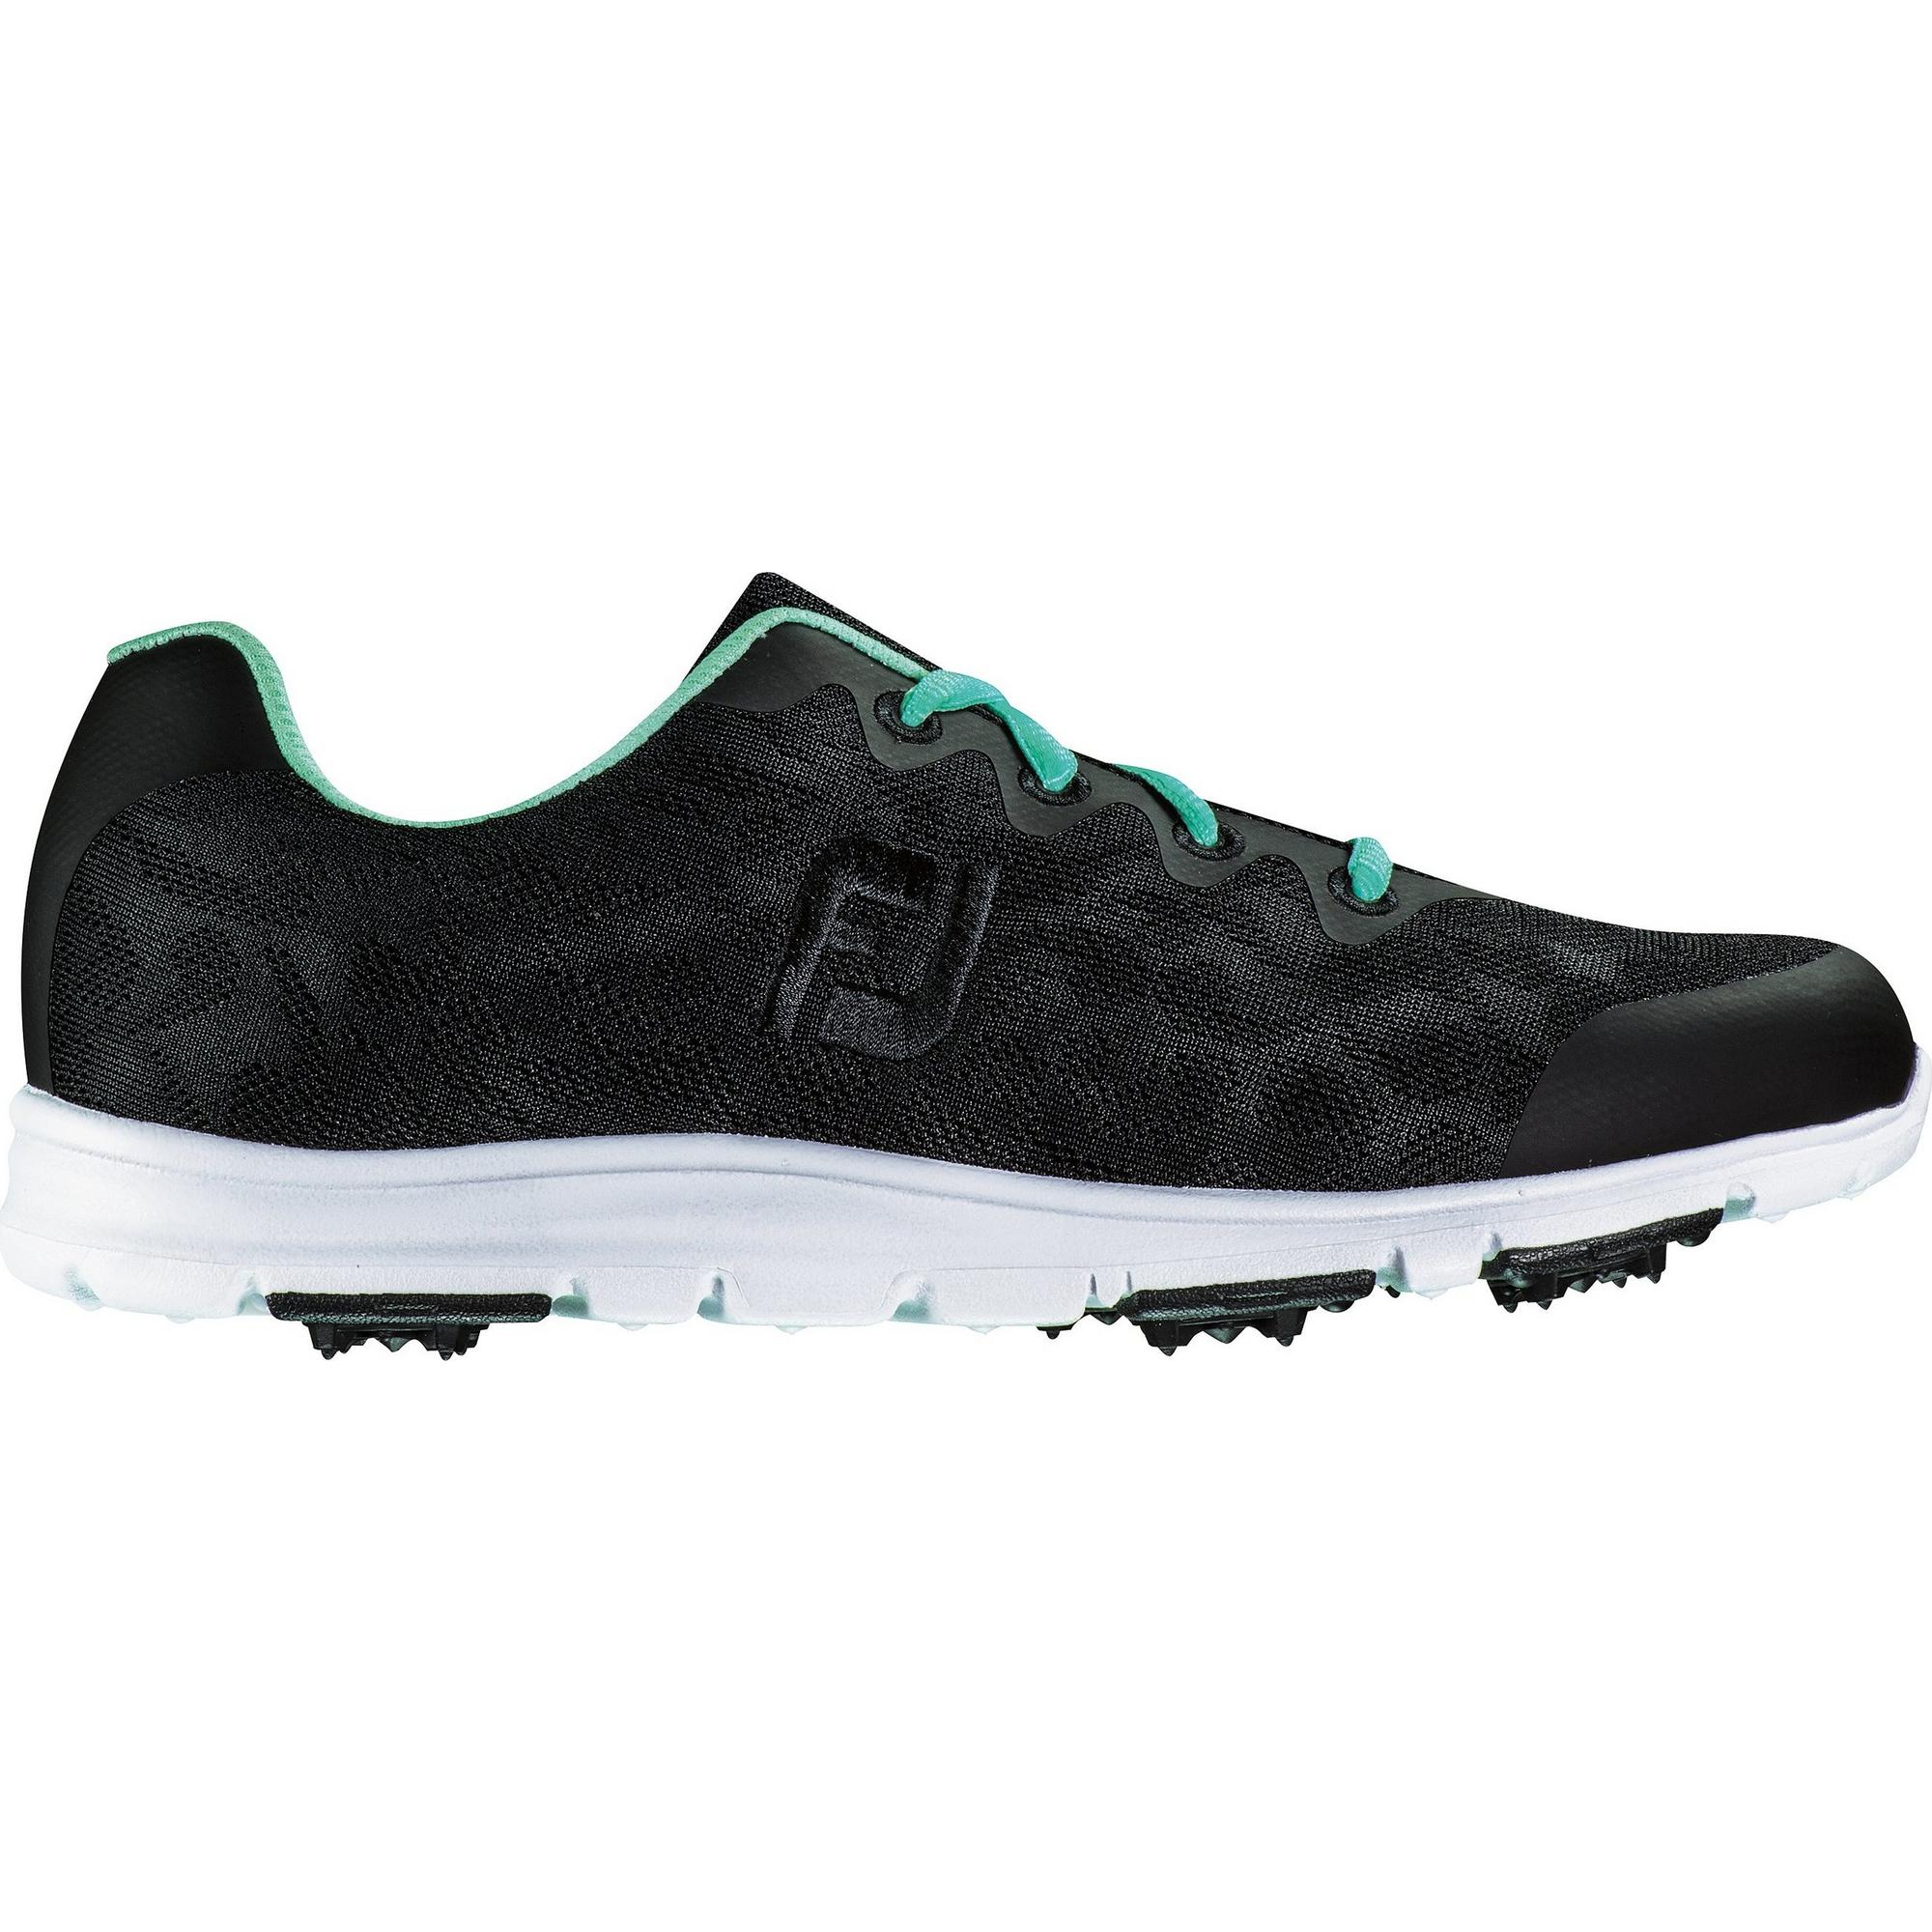 Women's enJOY Spikeless Golf Shoe- Black